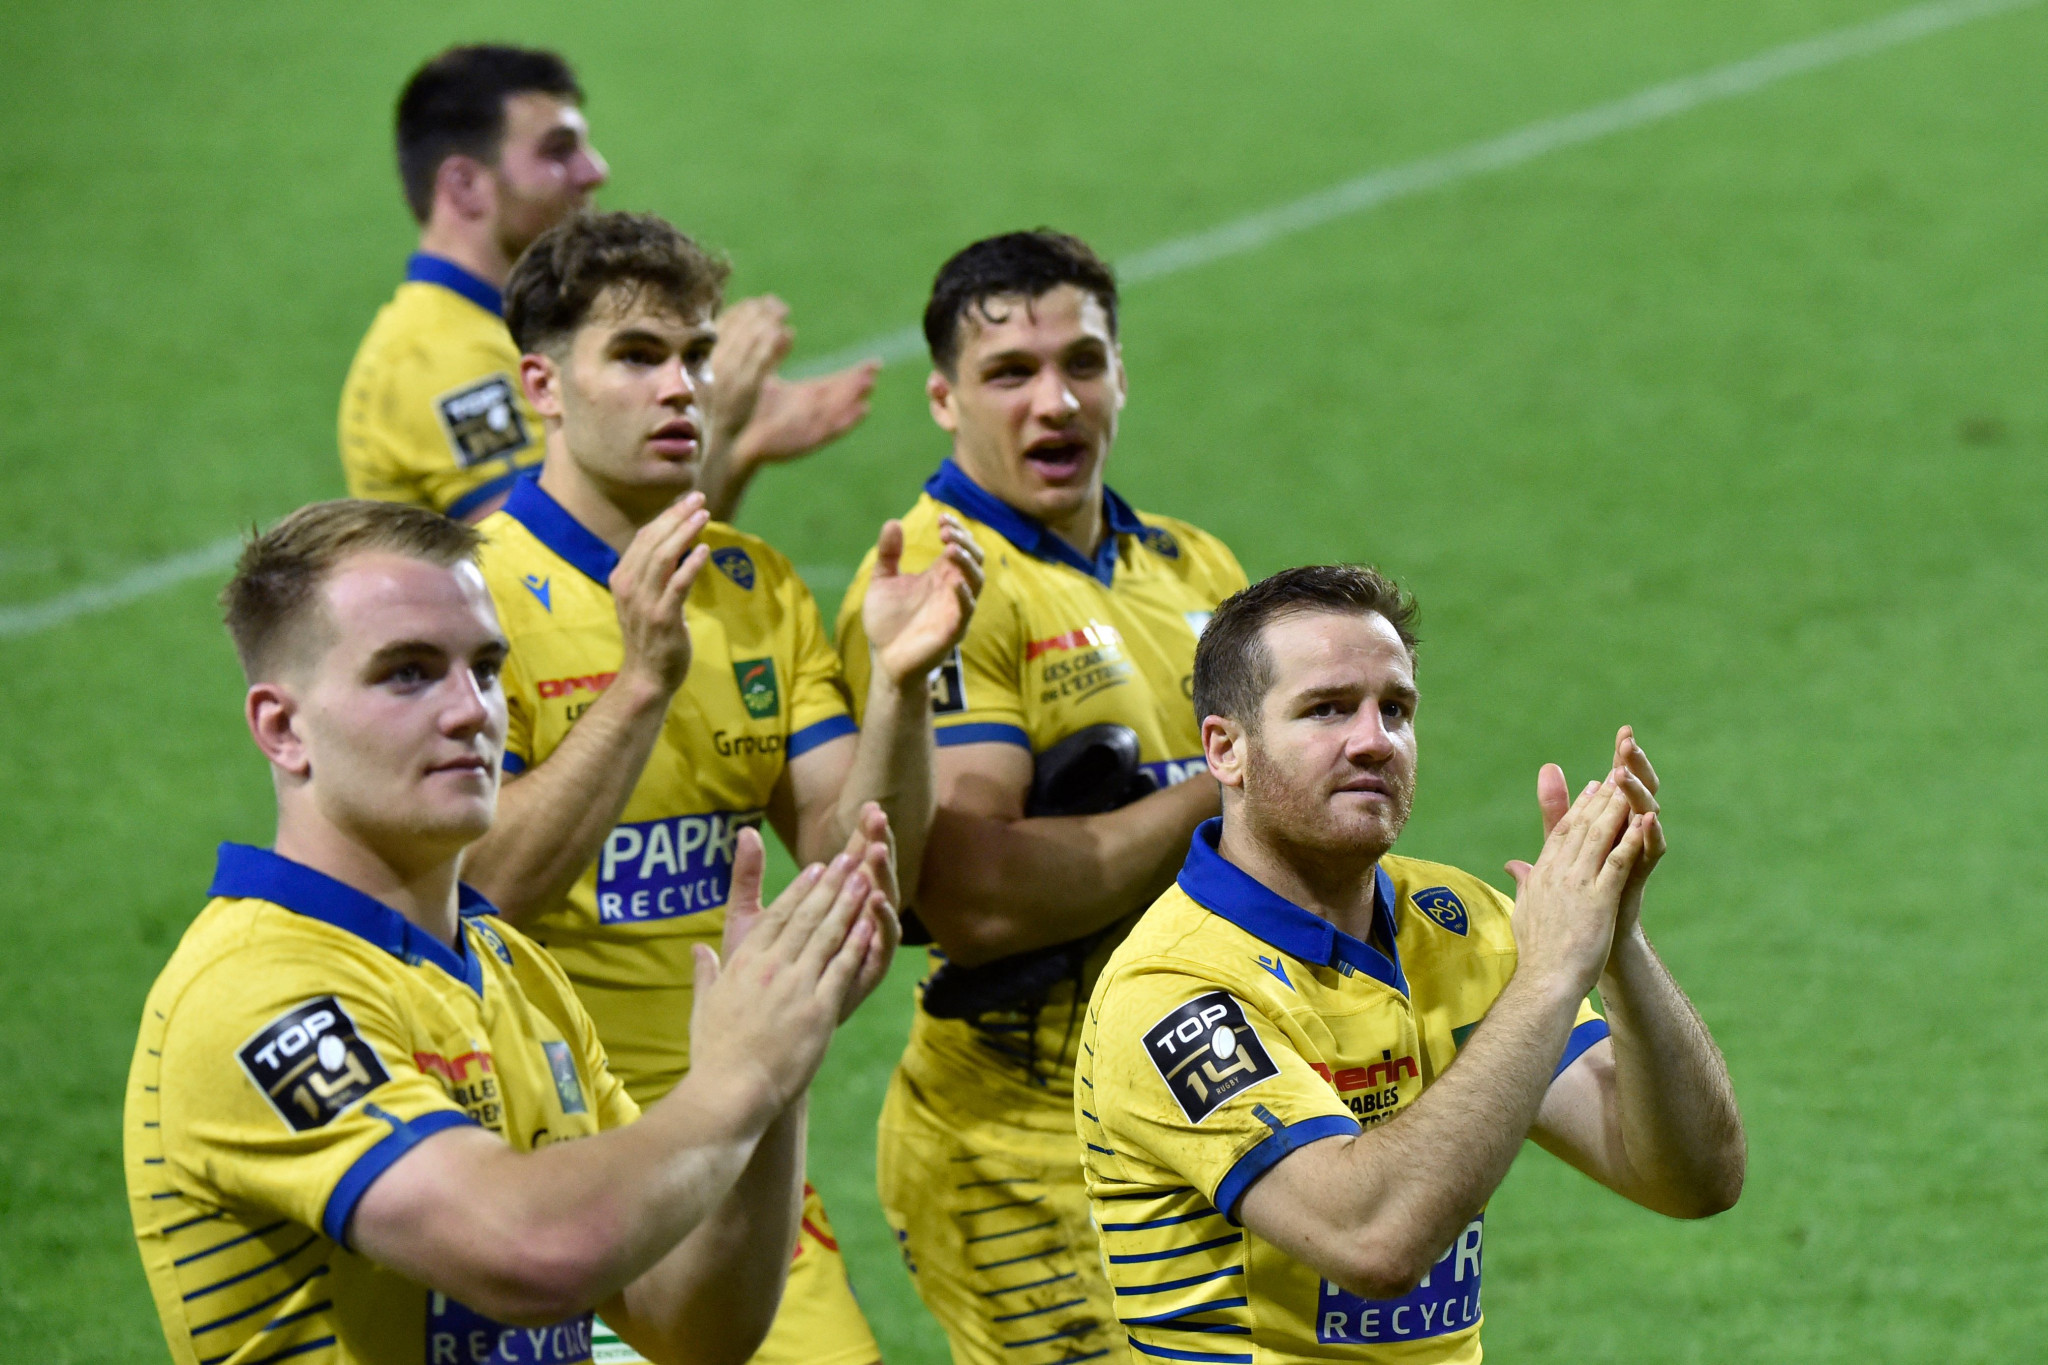 Clermont Auvergne are one of the teams to have agreed to participate in a trial to monitor the guidelines' effectiveness ©Getty Images